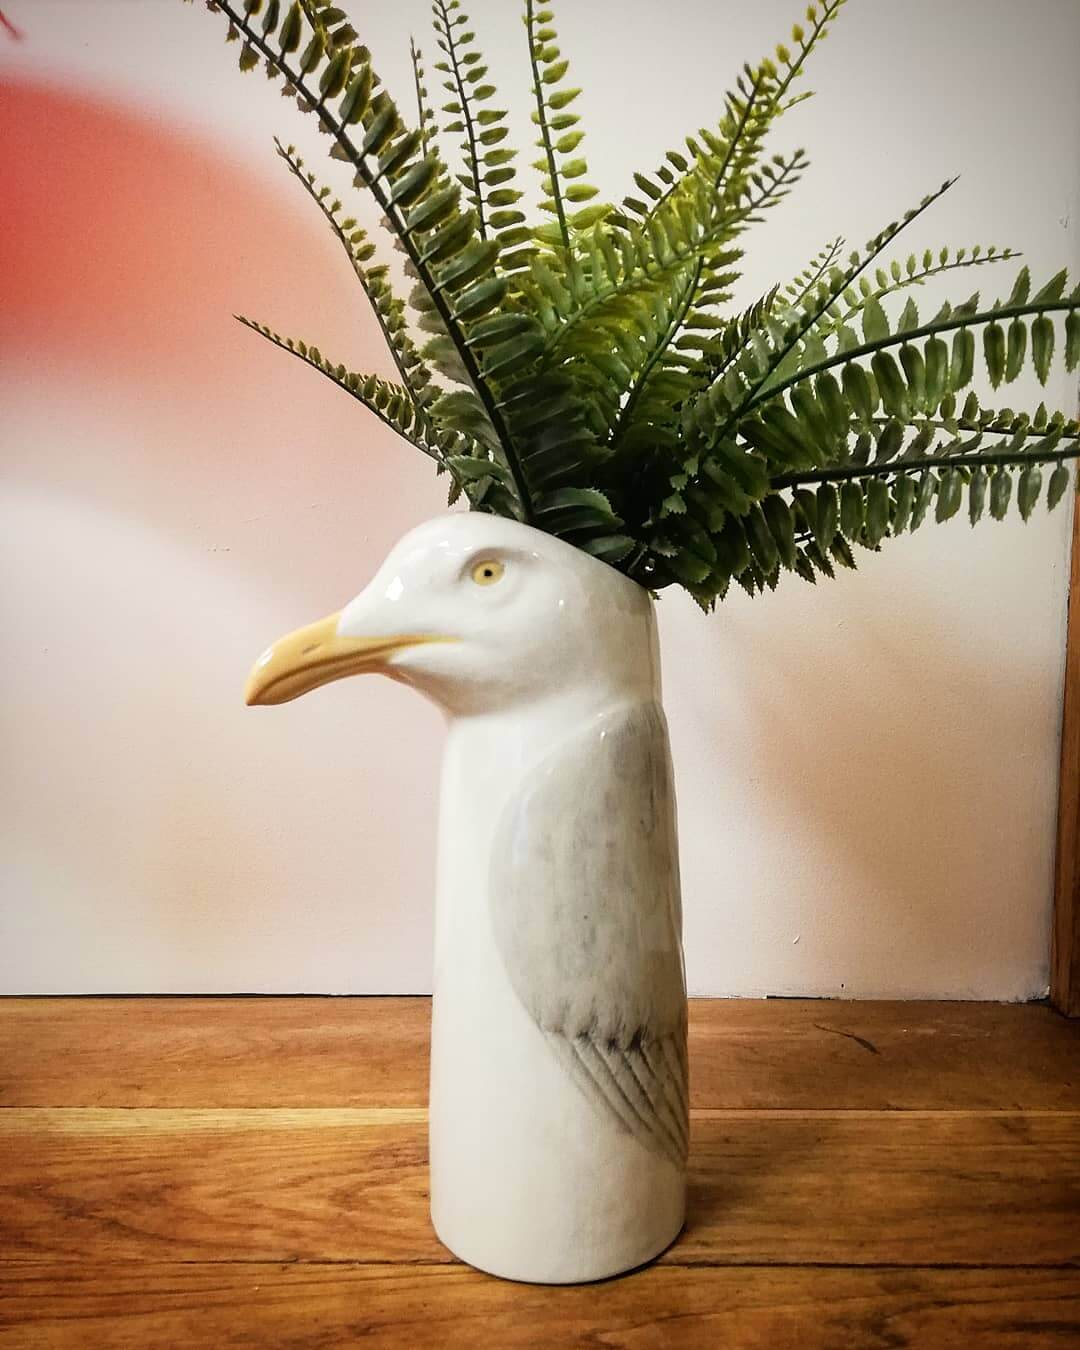 💚 NEW GUY 💚 Say hello to our new addition of @quail_ceramics. Isn't he a beauty?! All vases now back in stock